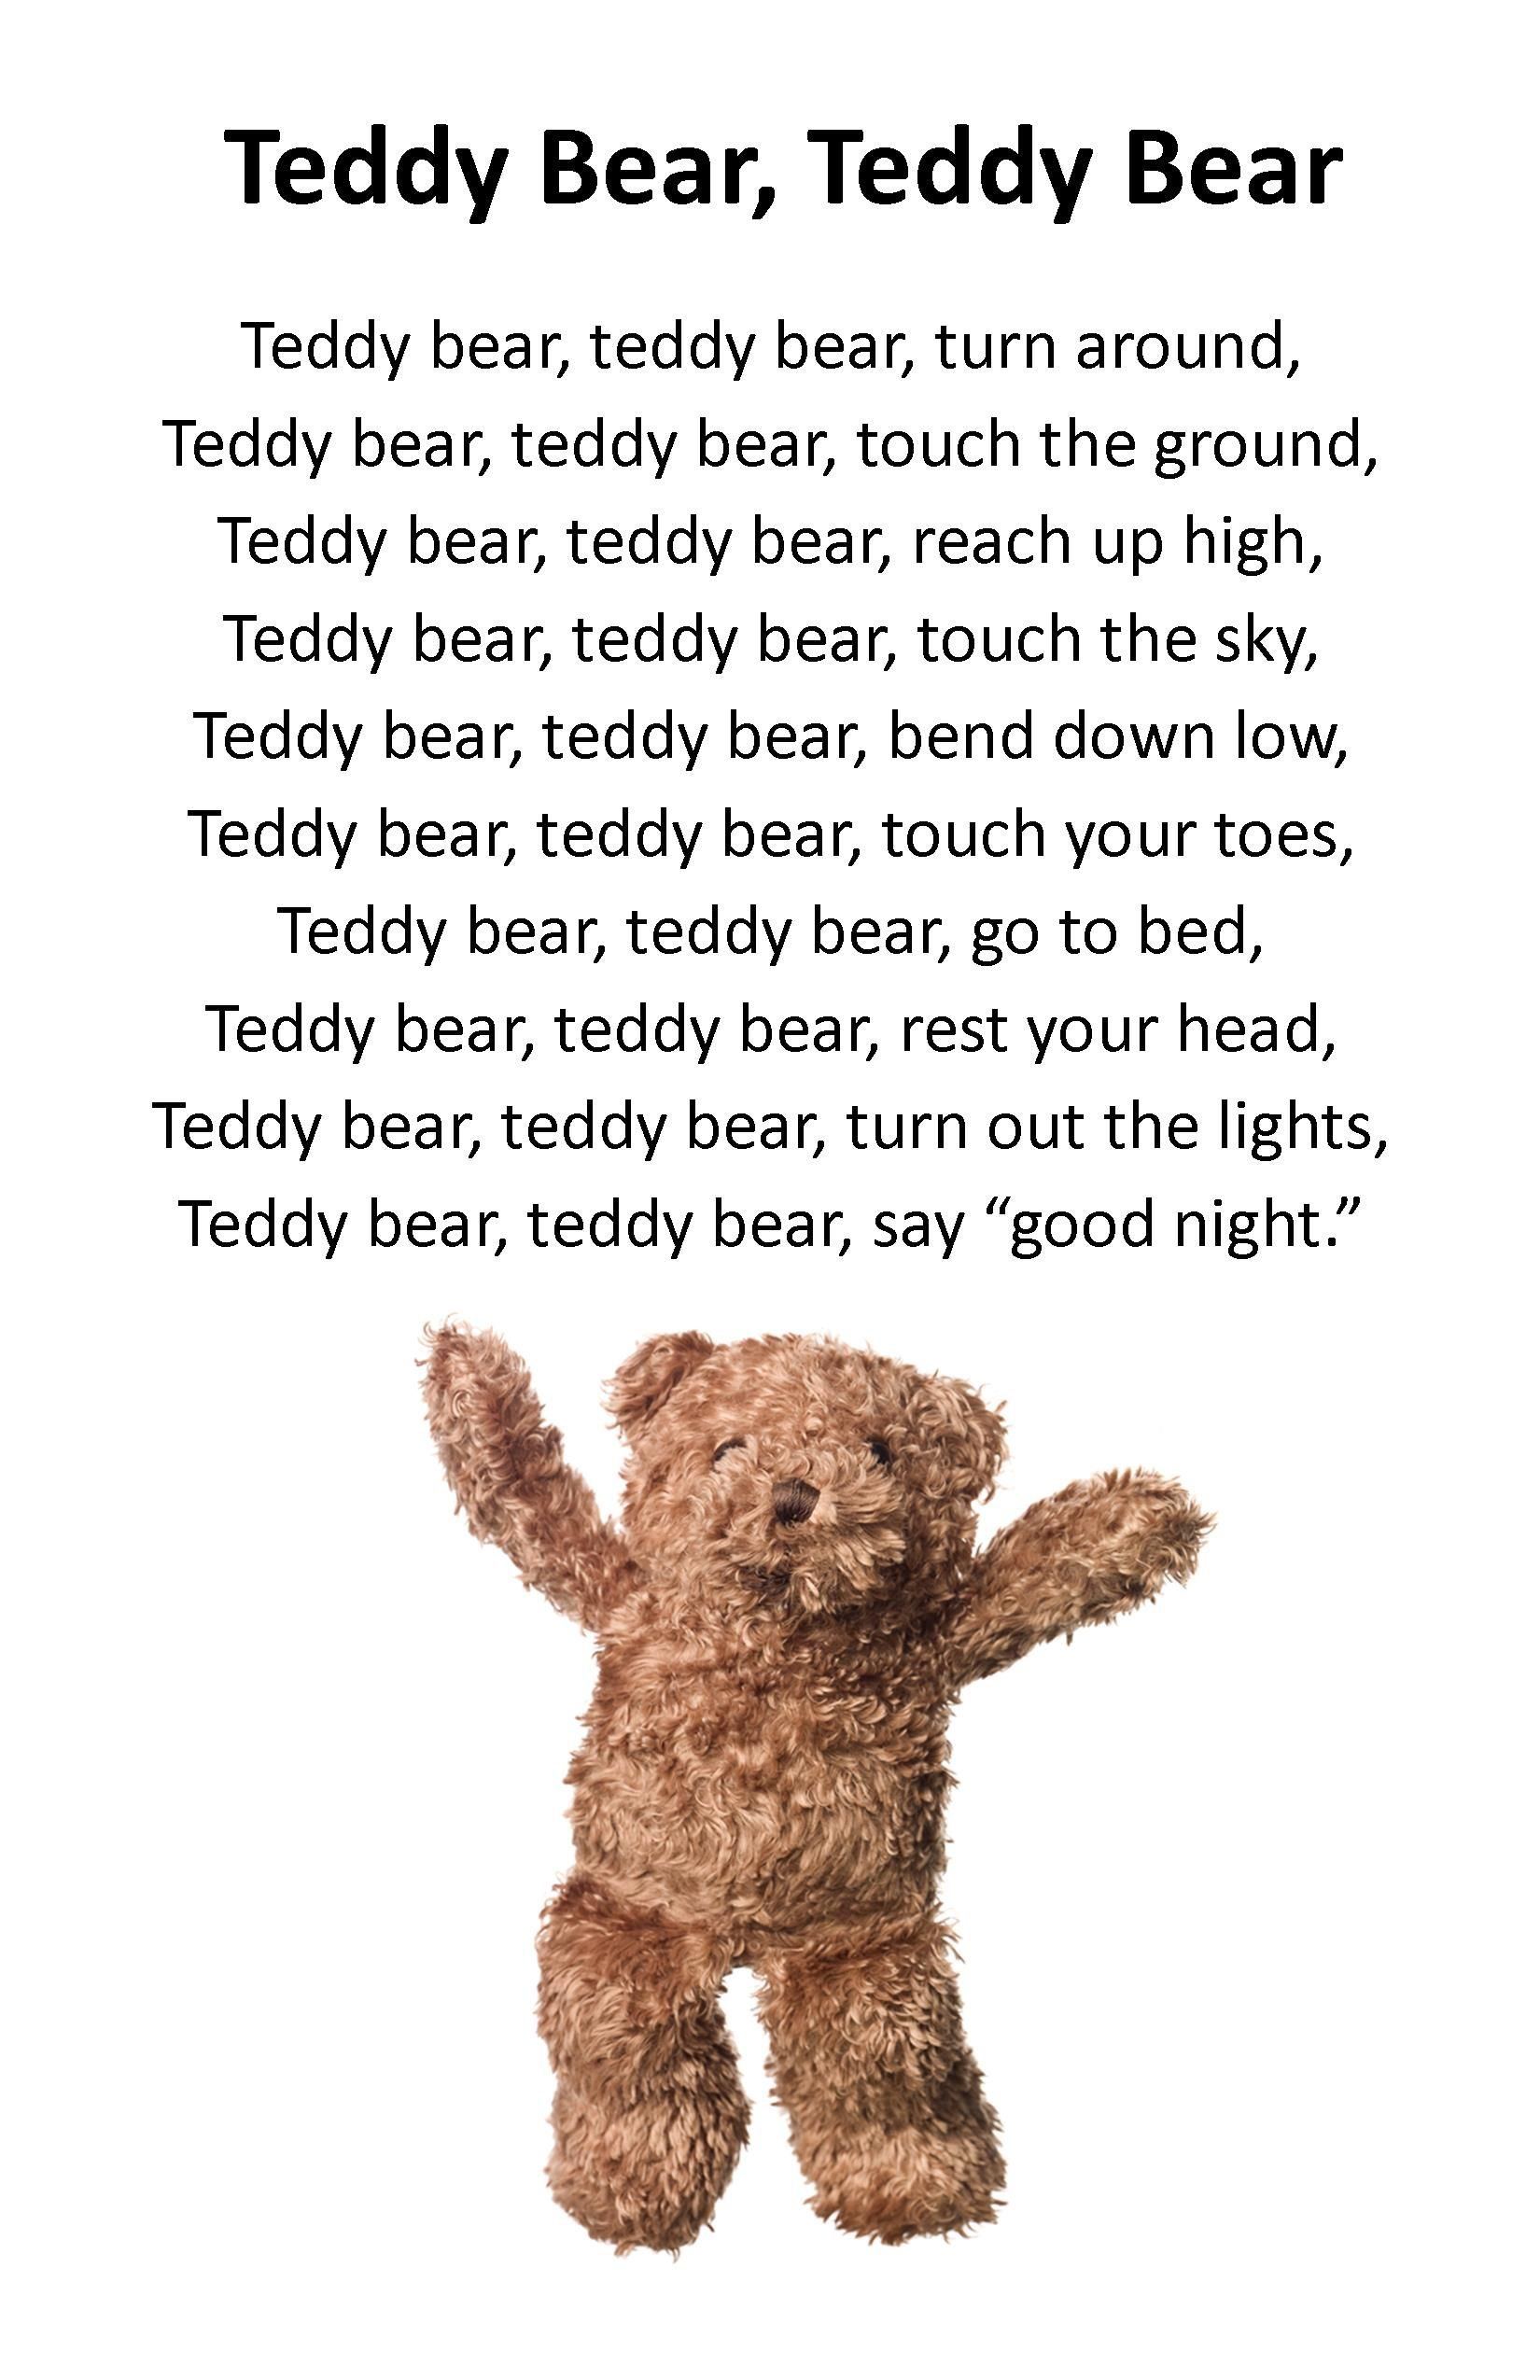 Image result for Teddy Bear Teddy Bear turn around